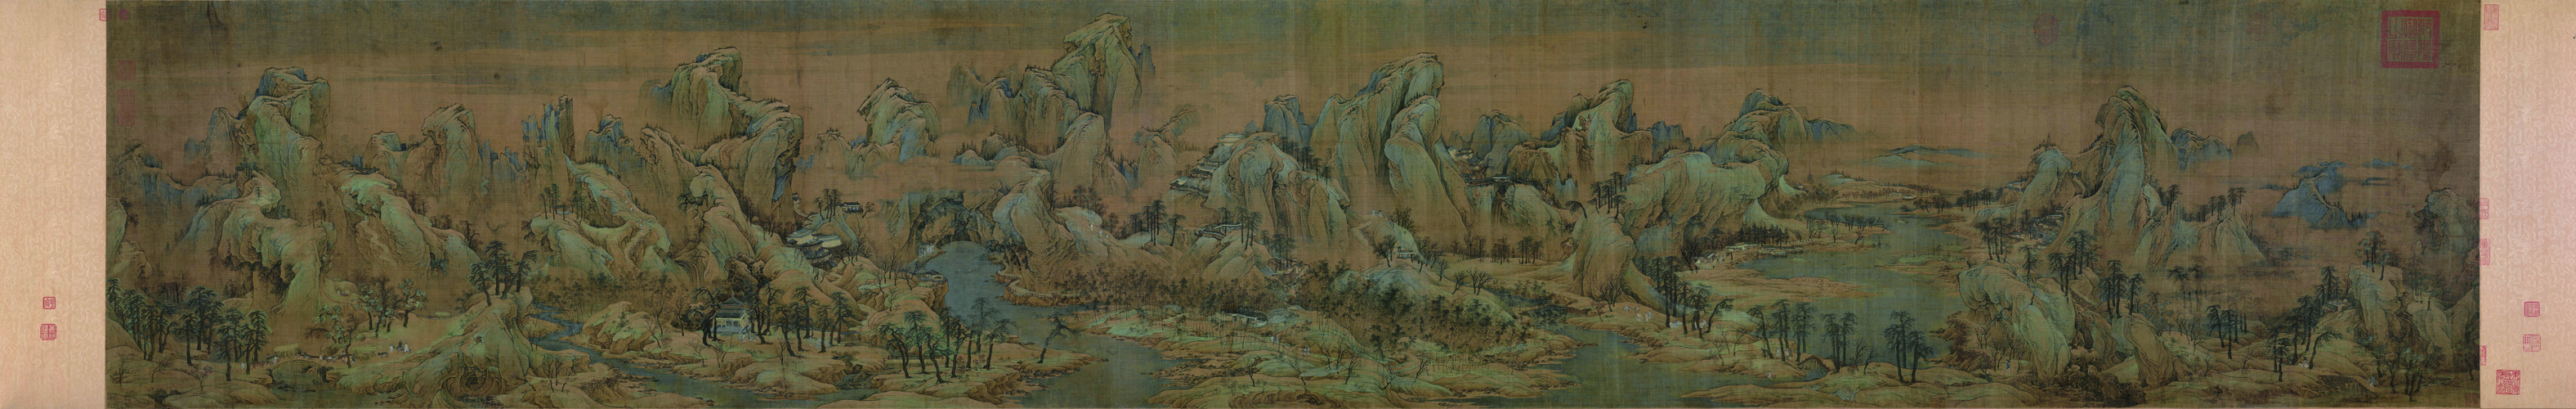 Zhao Boju: Autumn Colors along Rivers and Mountains